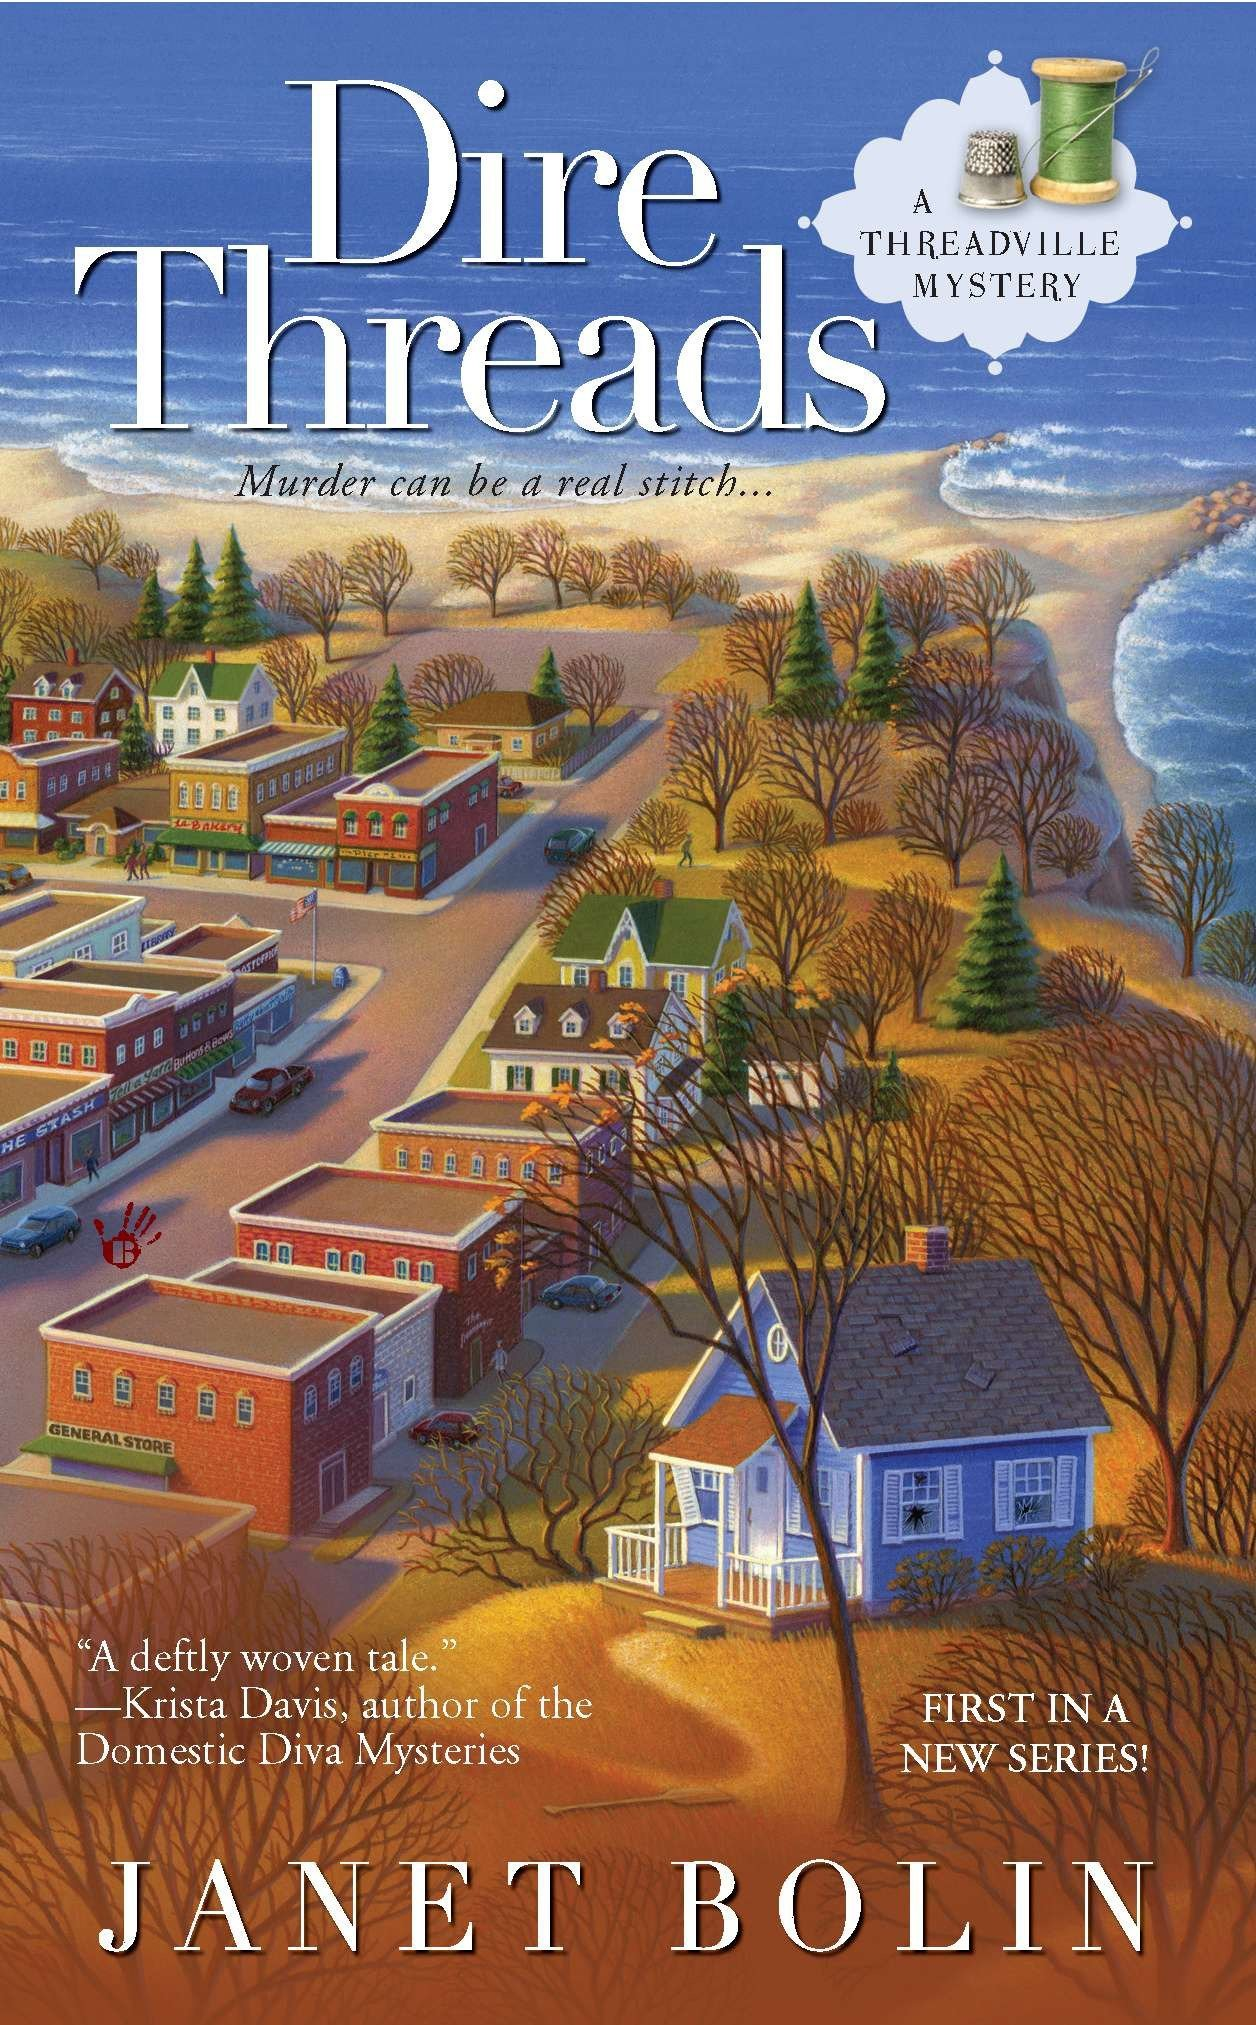 Download Dire Threads (A Threadville Mystery) PDF